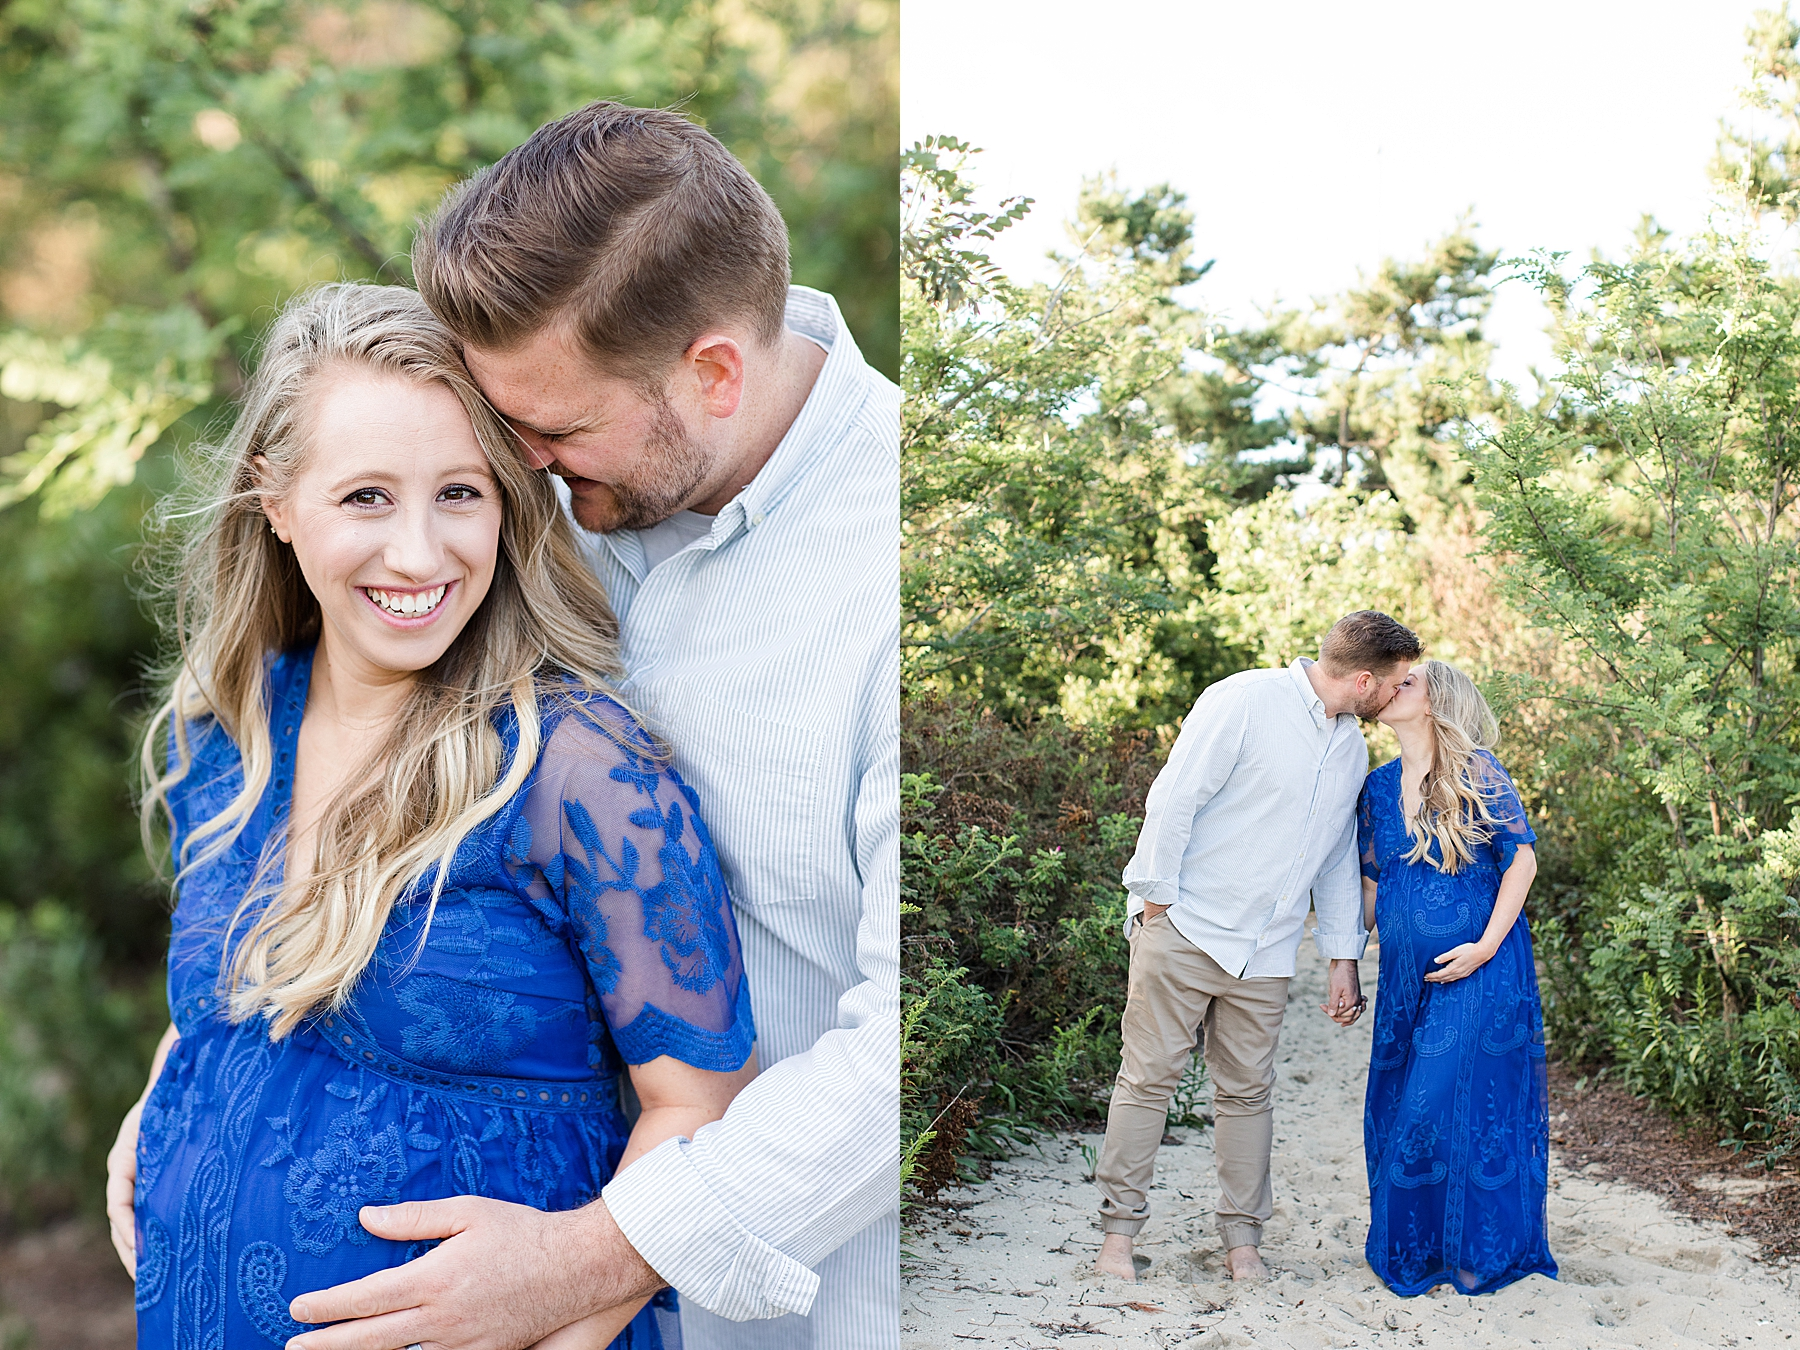 Caitlin + Sean's Maternity Session at Belmar Beach